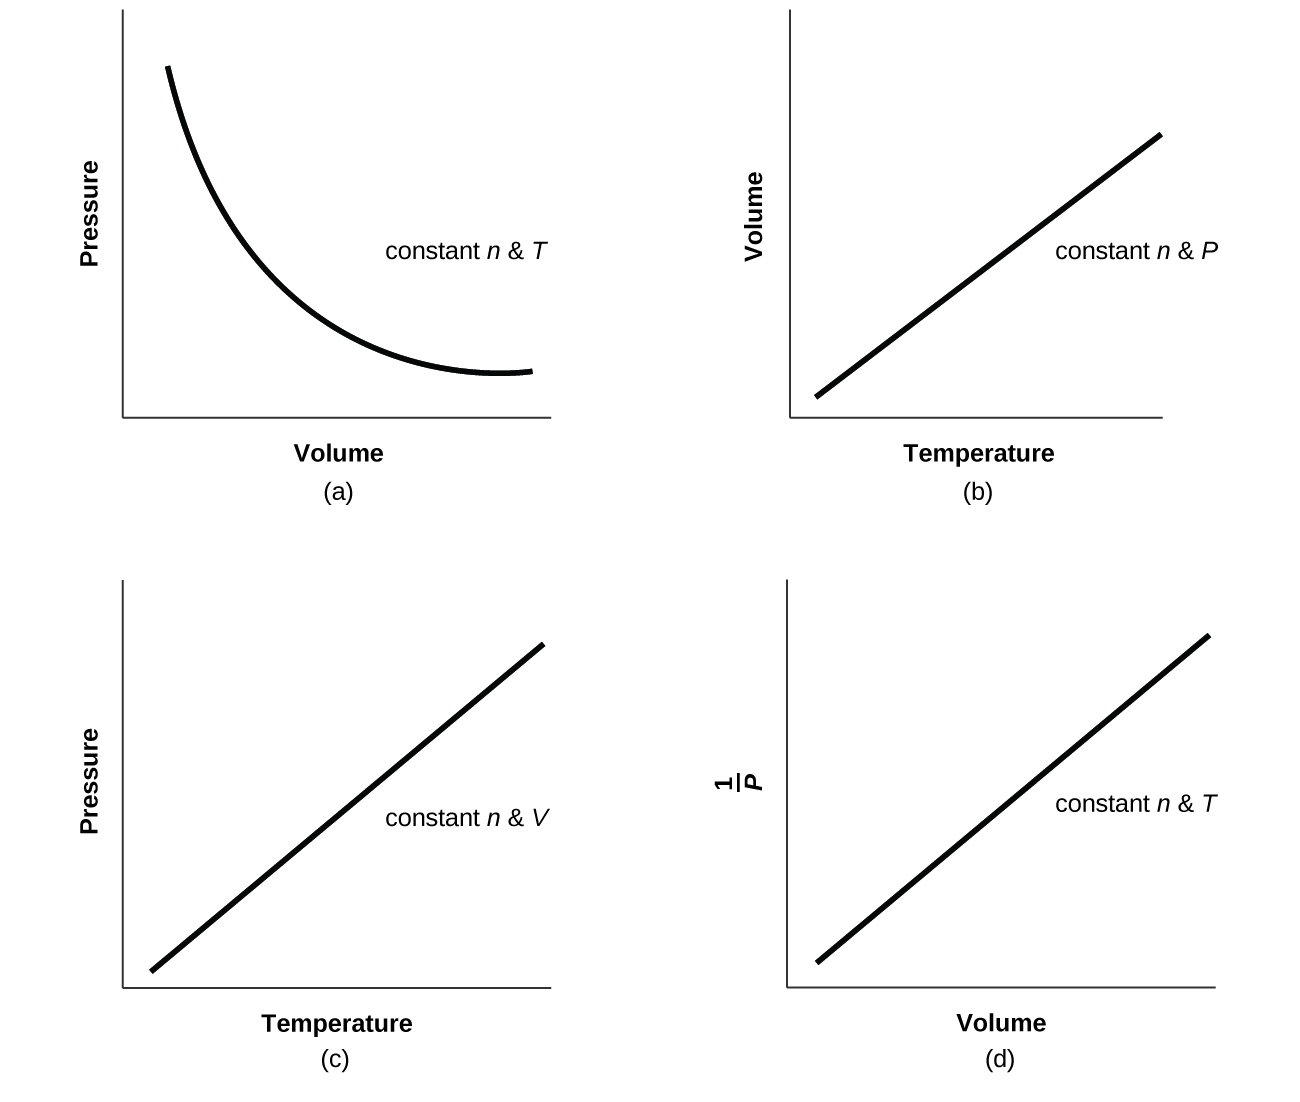 Four graphs are shown. In a, Volume is on the horizontal axis and Pressure is on the vertical axis. A downward trend with a decreasing rate of change is shown by a curved line. The label n, P cons is shown on the graph. In b, Temperature is on the horizontal axis and Volume is on the vertical axis. An increasing linear trend is shown by a straight line segment. The label n, P cons is shown on the graph. In c, Temperature is on the horizontal axis and Pressure is on the vertical axis. An increasing linear trend is shown by a straight line segment. The label n, P cons is shown on the graph. In d, Volume is on the horizontal axis and 1 divided by Pressure is on the vertical axis. An increasing linear trend is shown by a straight line segment on the graph. The label n, P cons is shown on the graph.